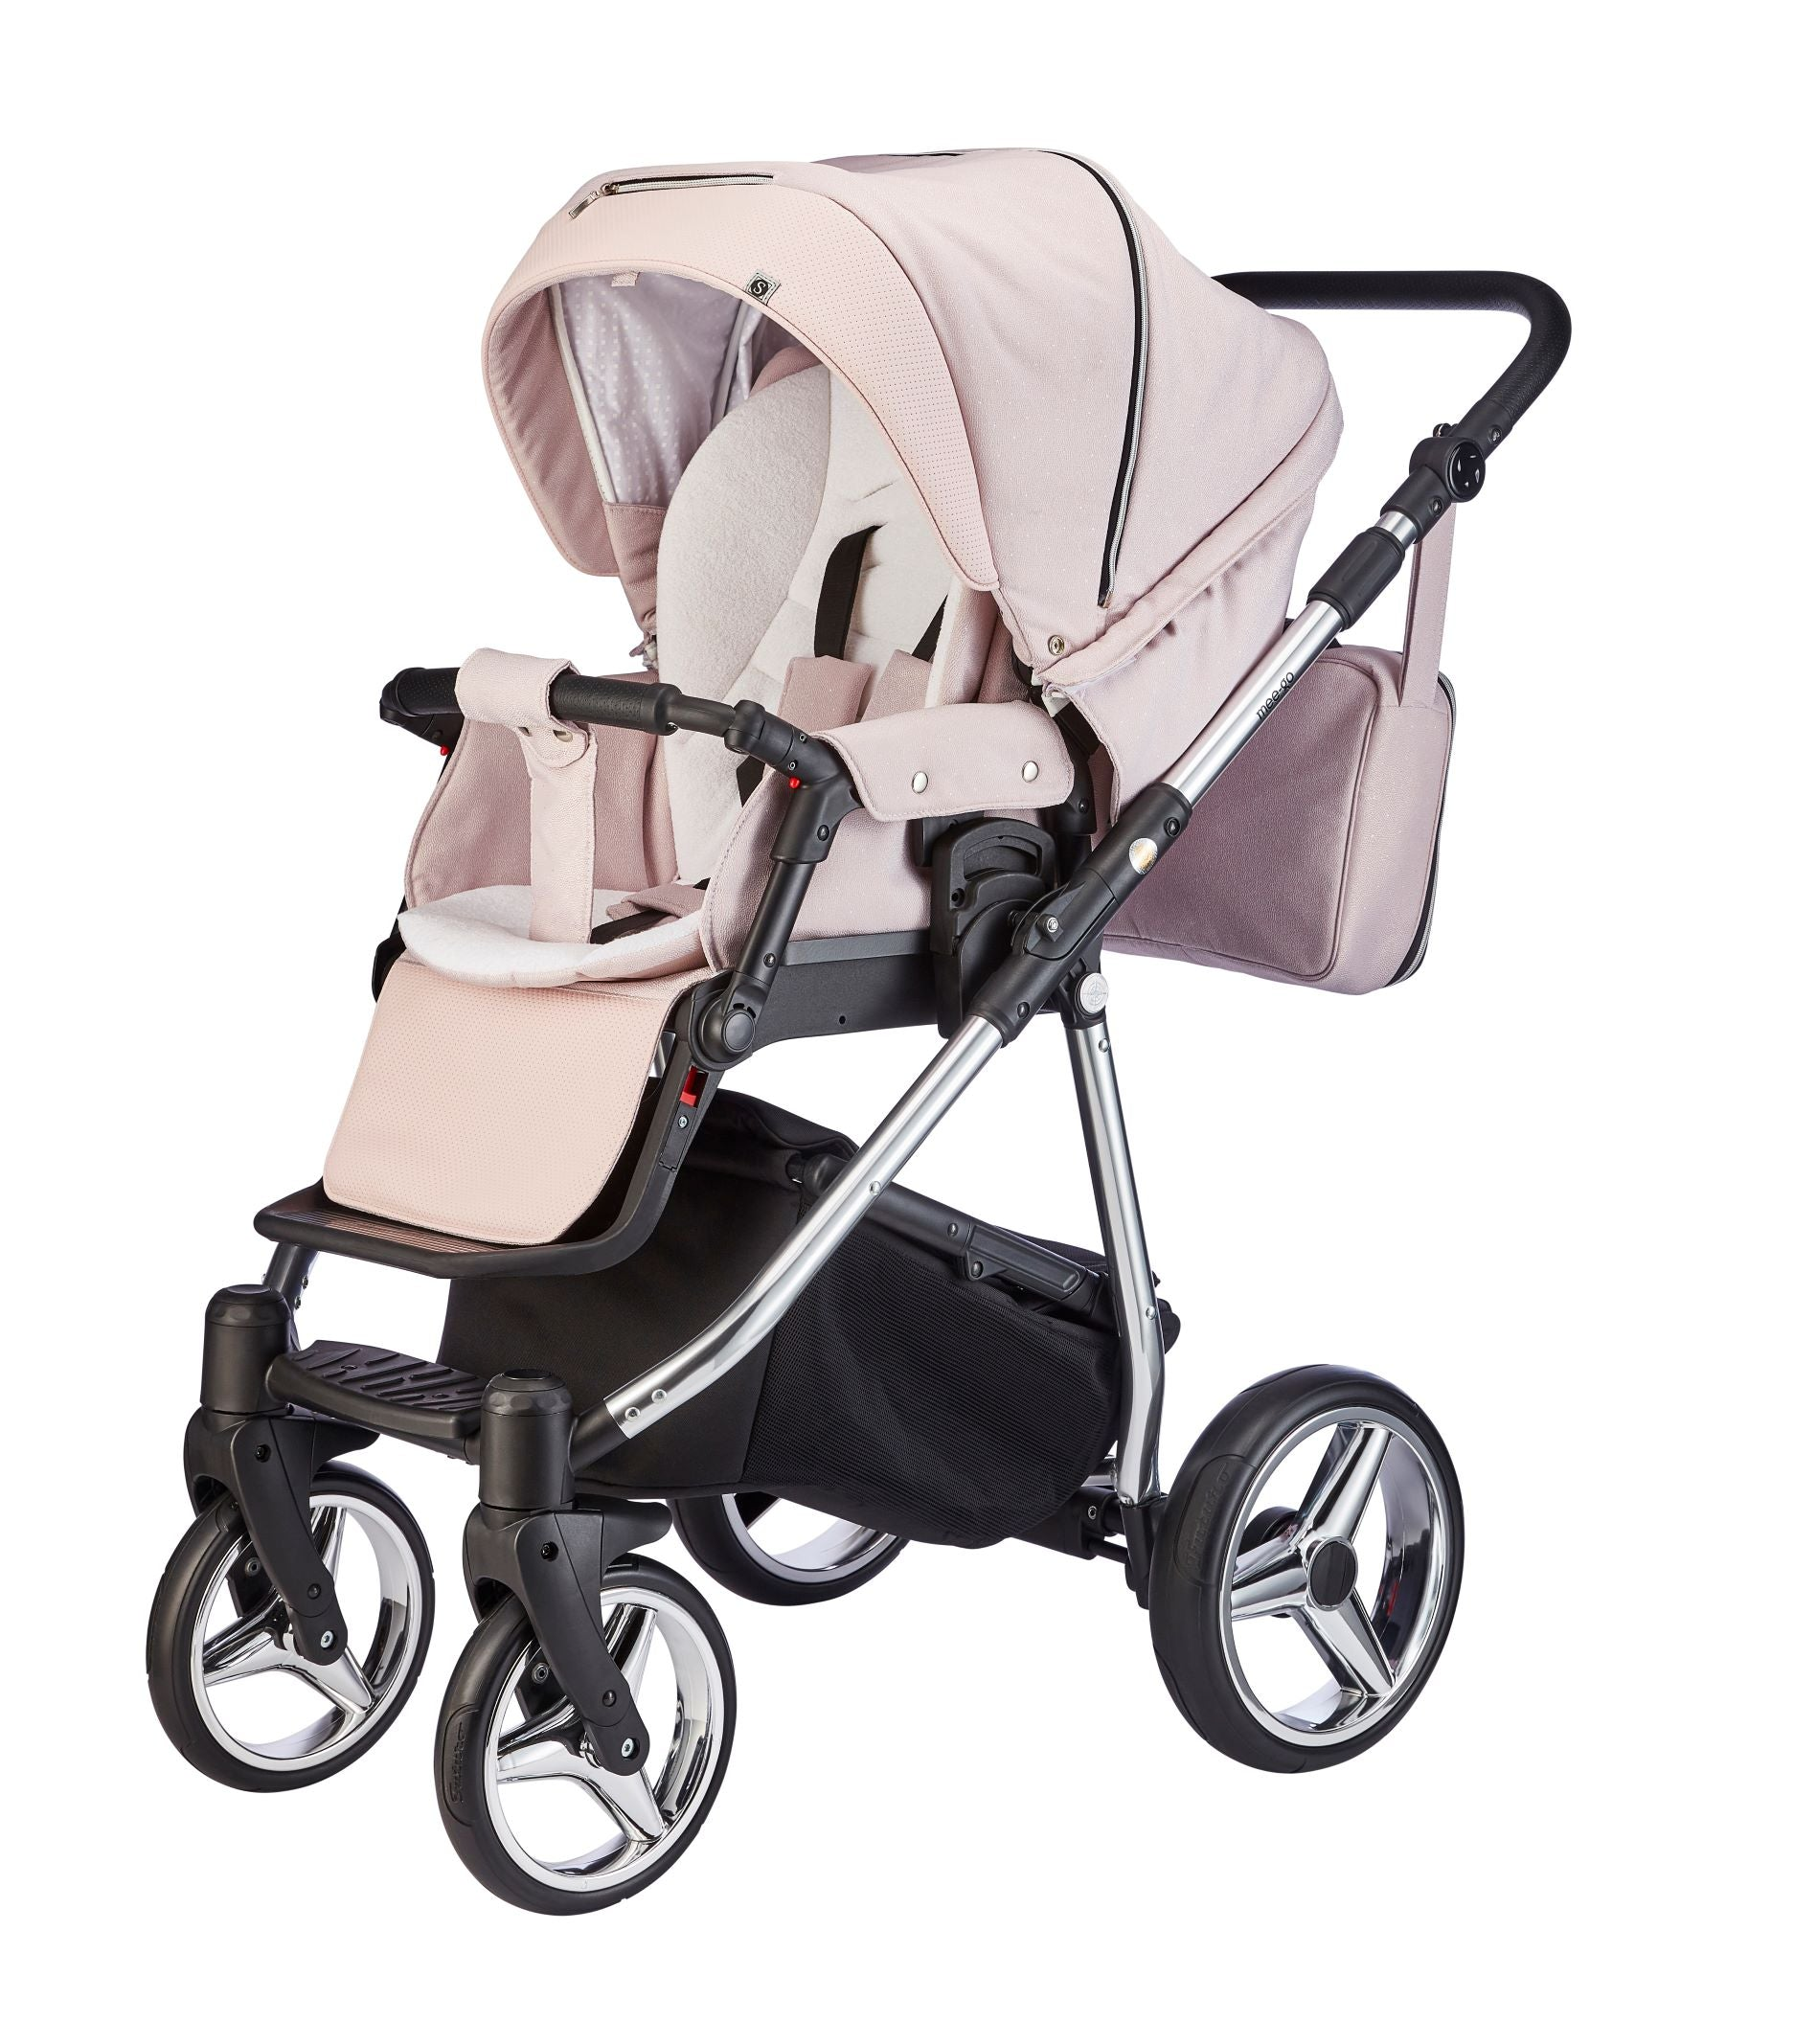 Santino Special Edition Fairy Dust Travel System Package